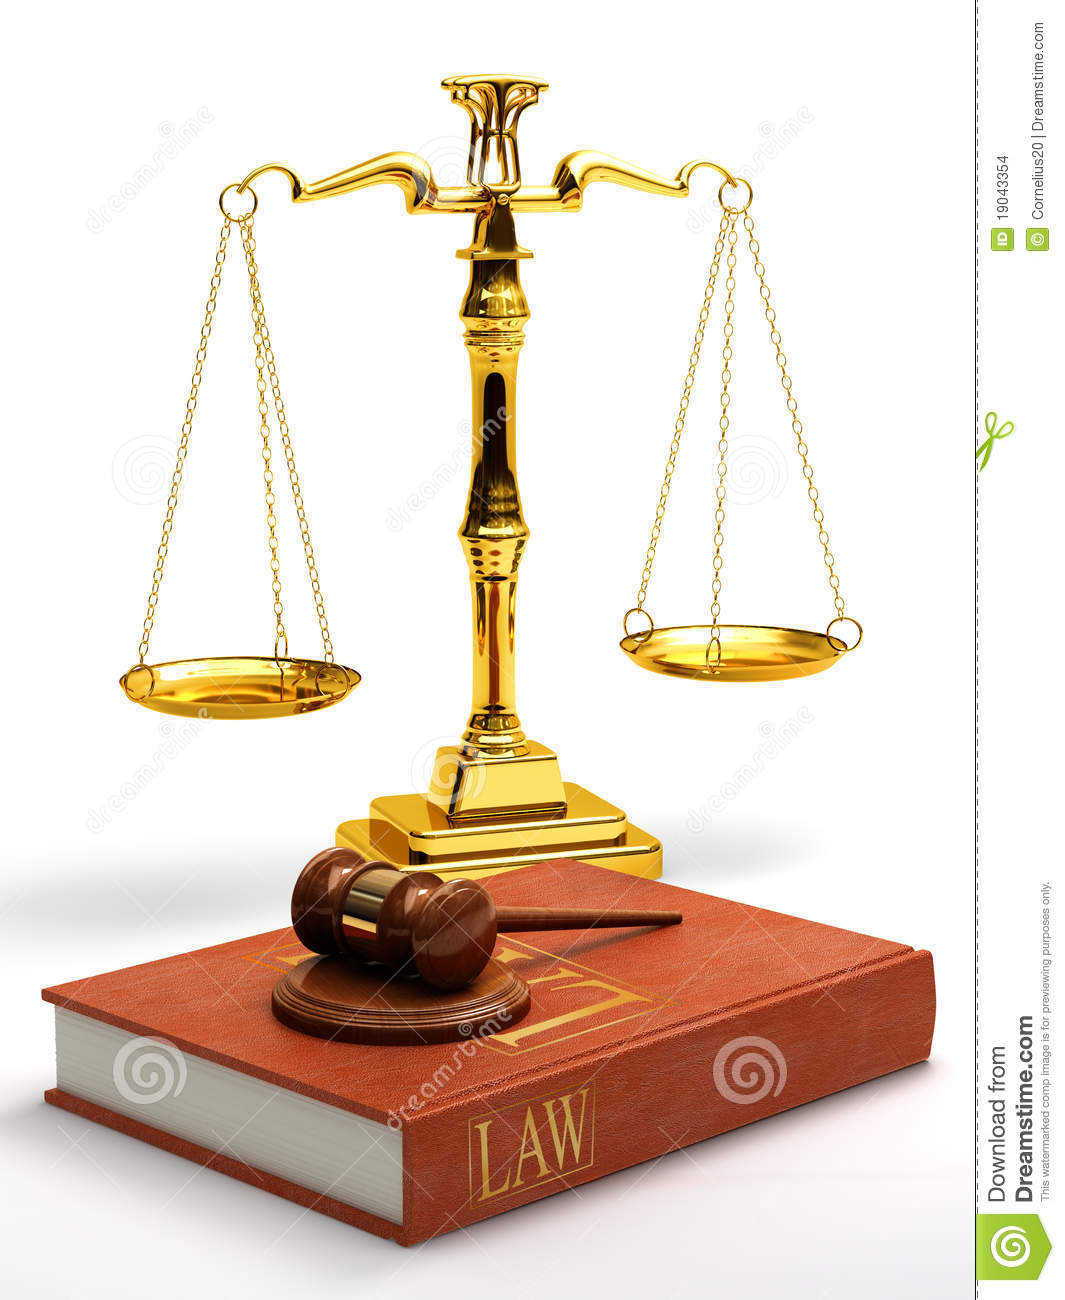 Gavel, Scales And Law Book Stock Images - Image: 19043354